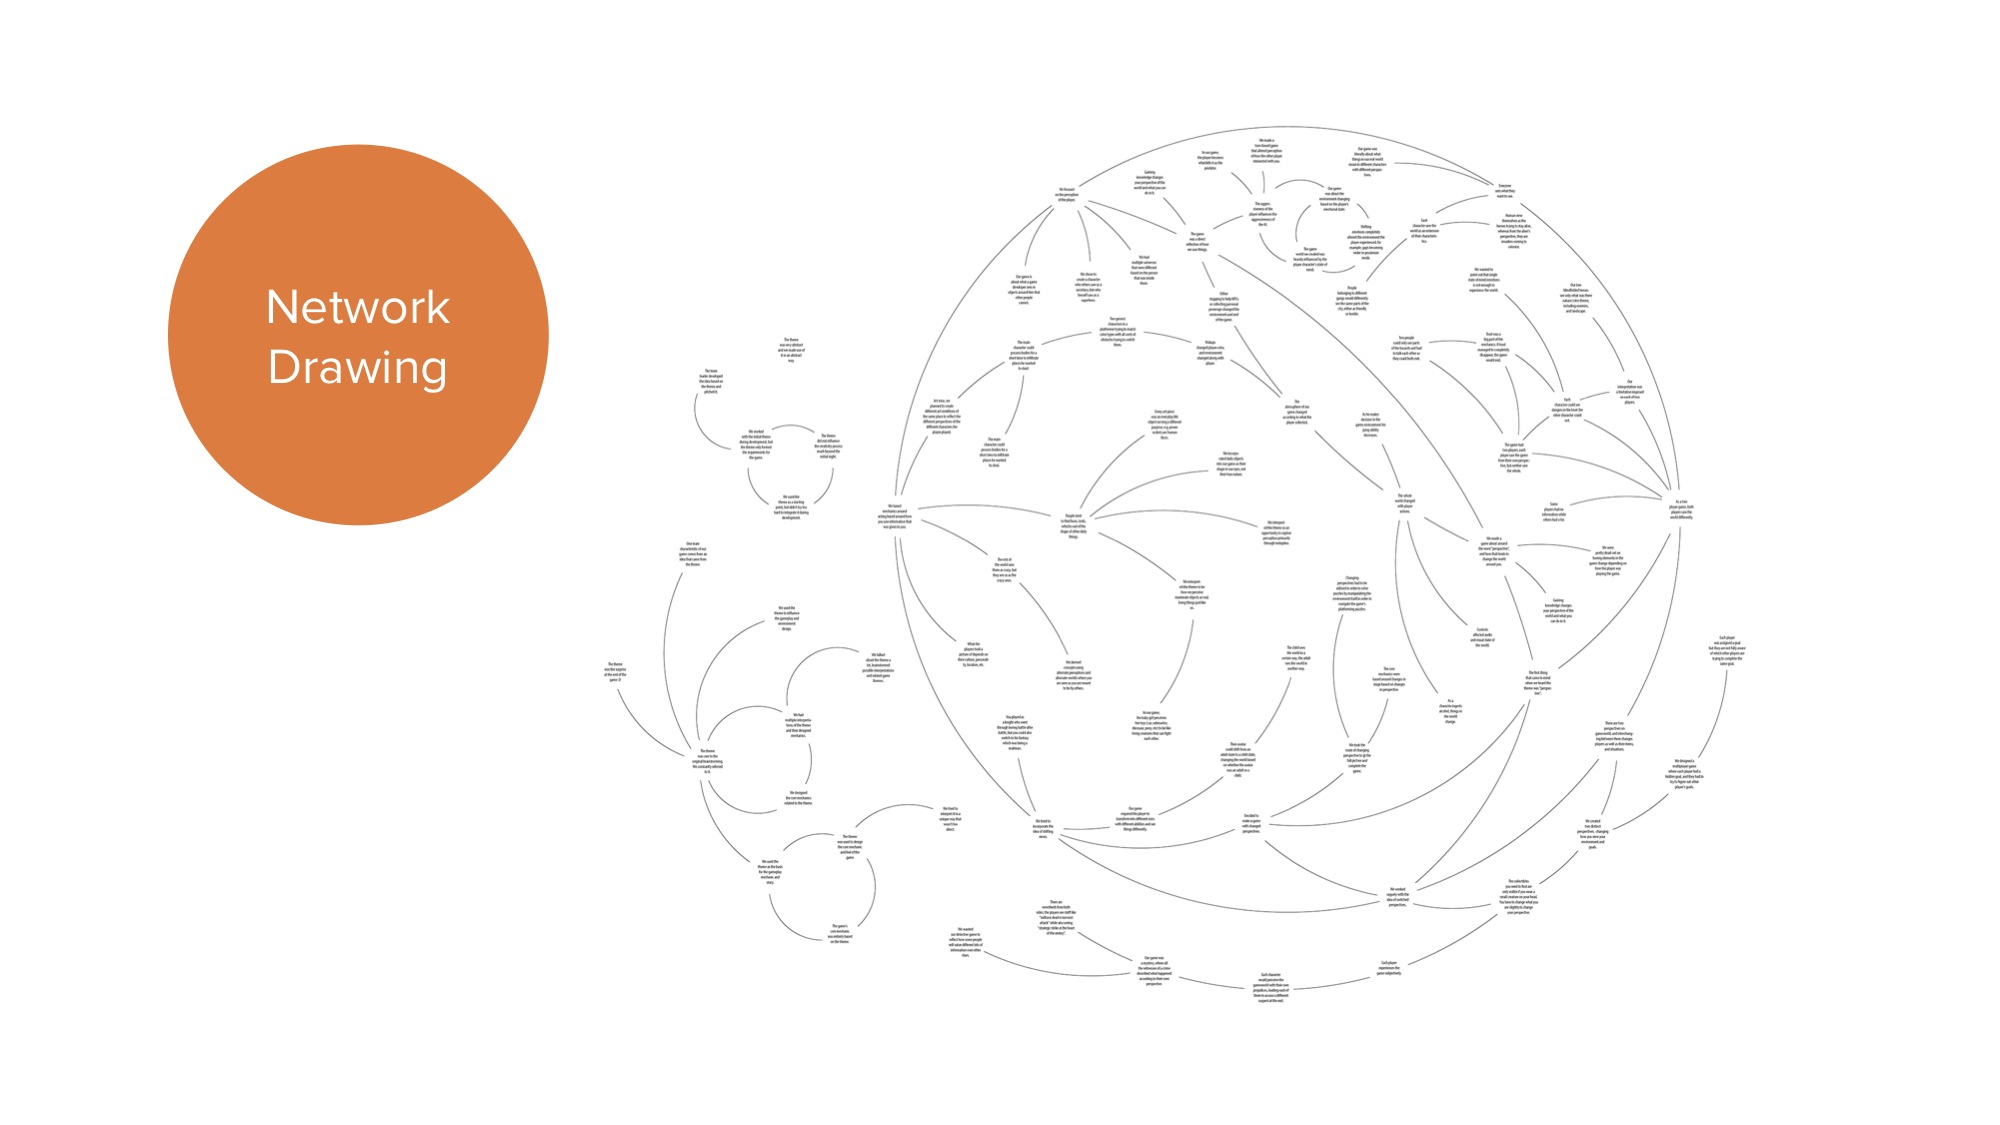 2014.10.17 - -How Are Ideas Connected- Drawing the Design Process of Idea Networks in Global Game Jam- - Meaningful Play 2014 16.jpeg